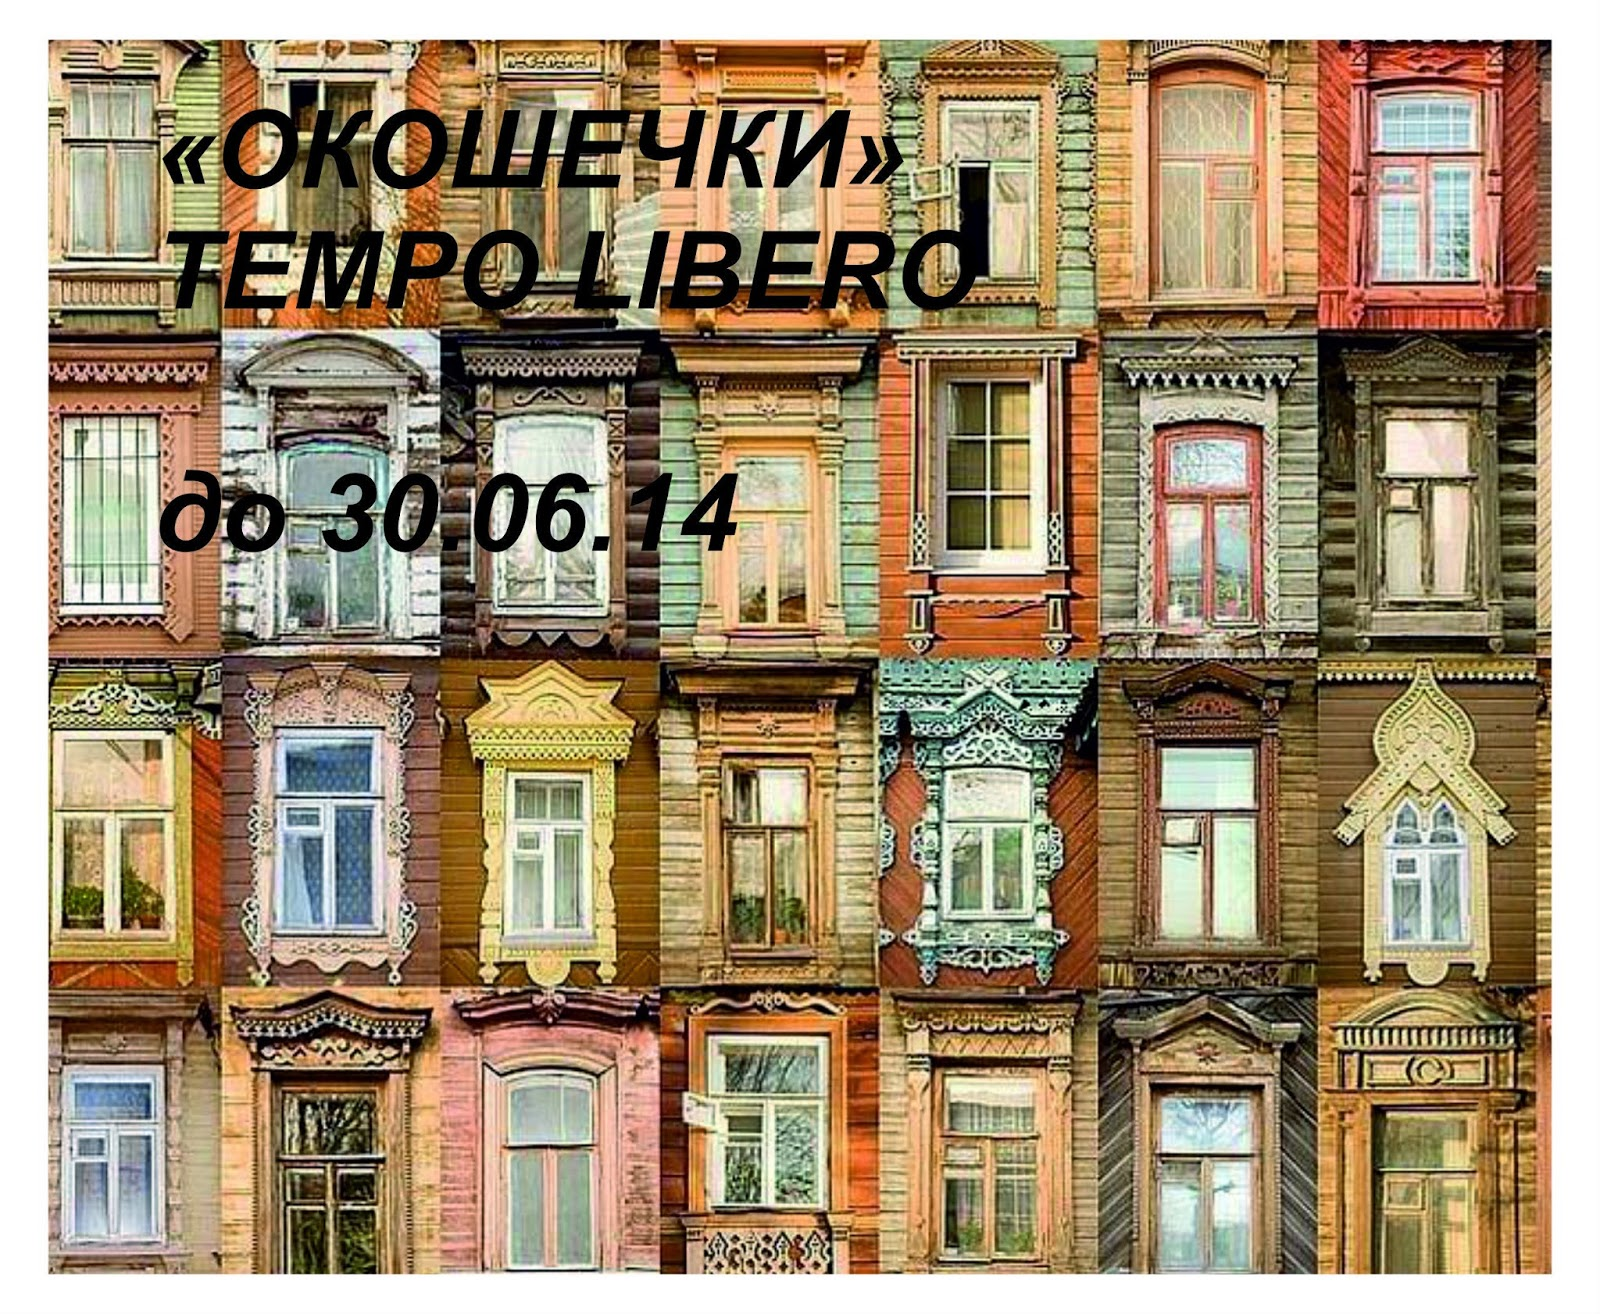 http://timelibero.blogspot.ru/2014/06/blog-post_2.html